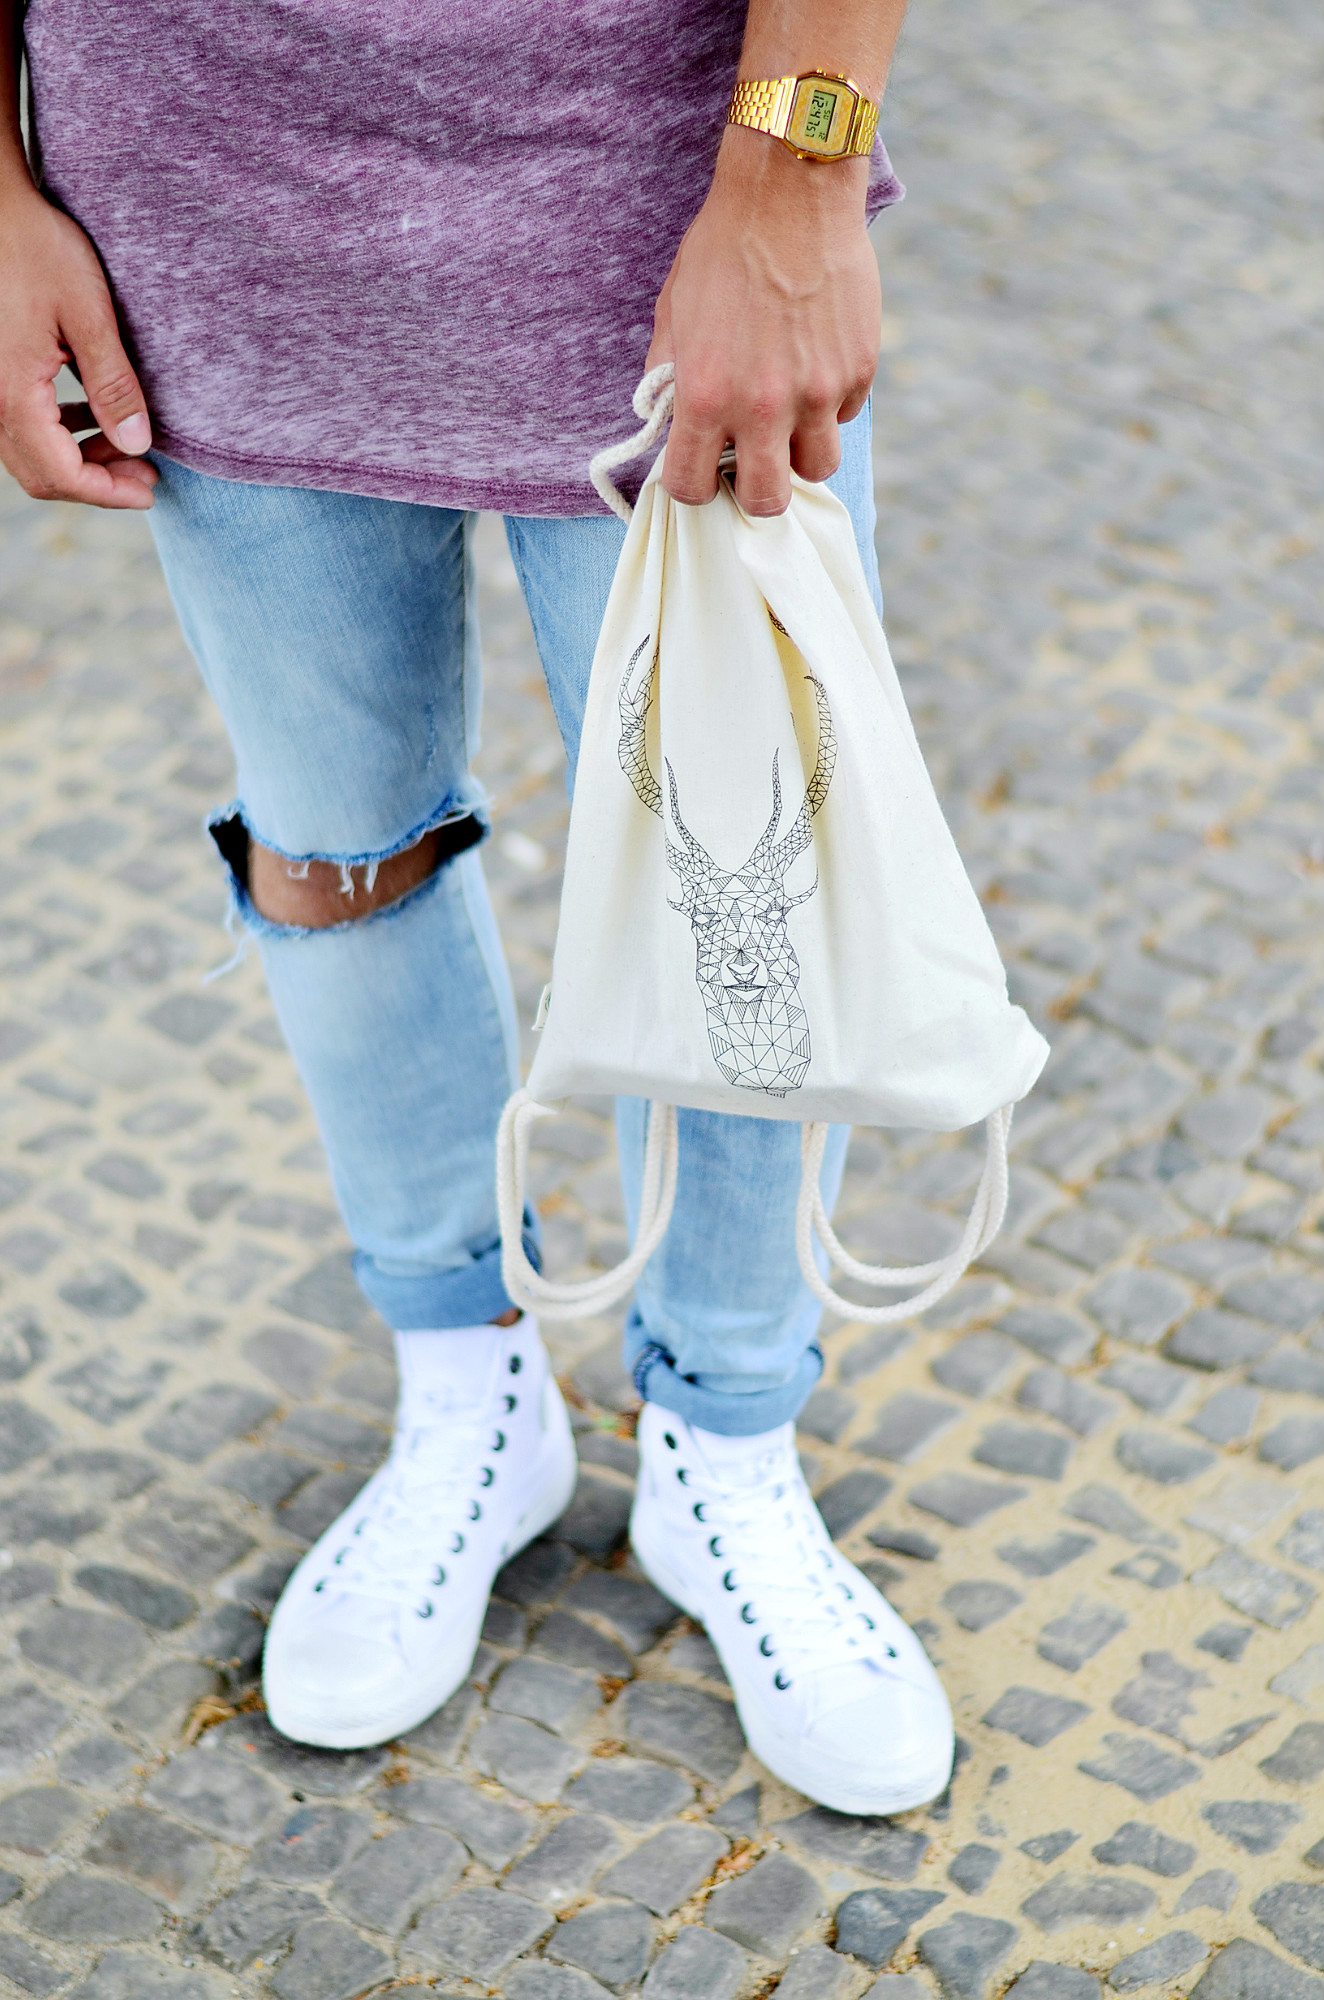 TommeezJerry-Converse-Chucks-weiß-Men-Fashion-Blg-Berlin-Outfit-Look-Longshirt-Deer-Backpack-Jutebeutel-Hirschkopf